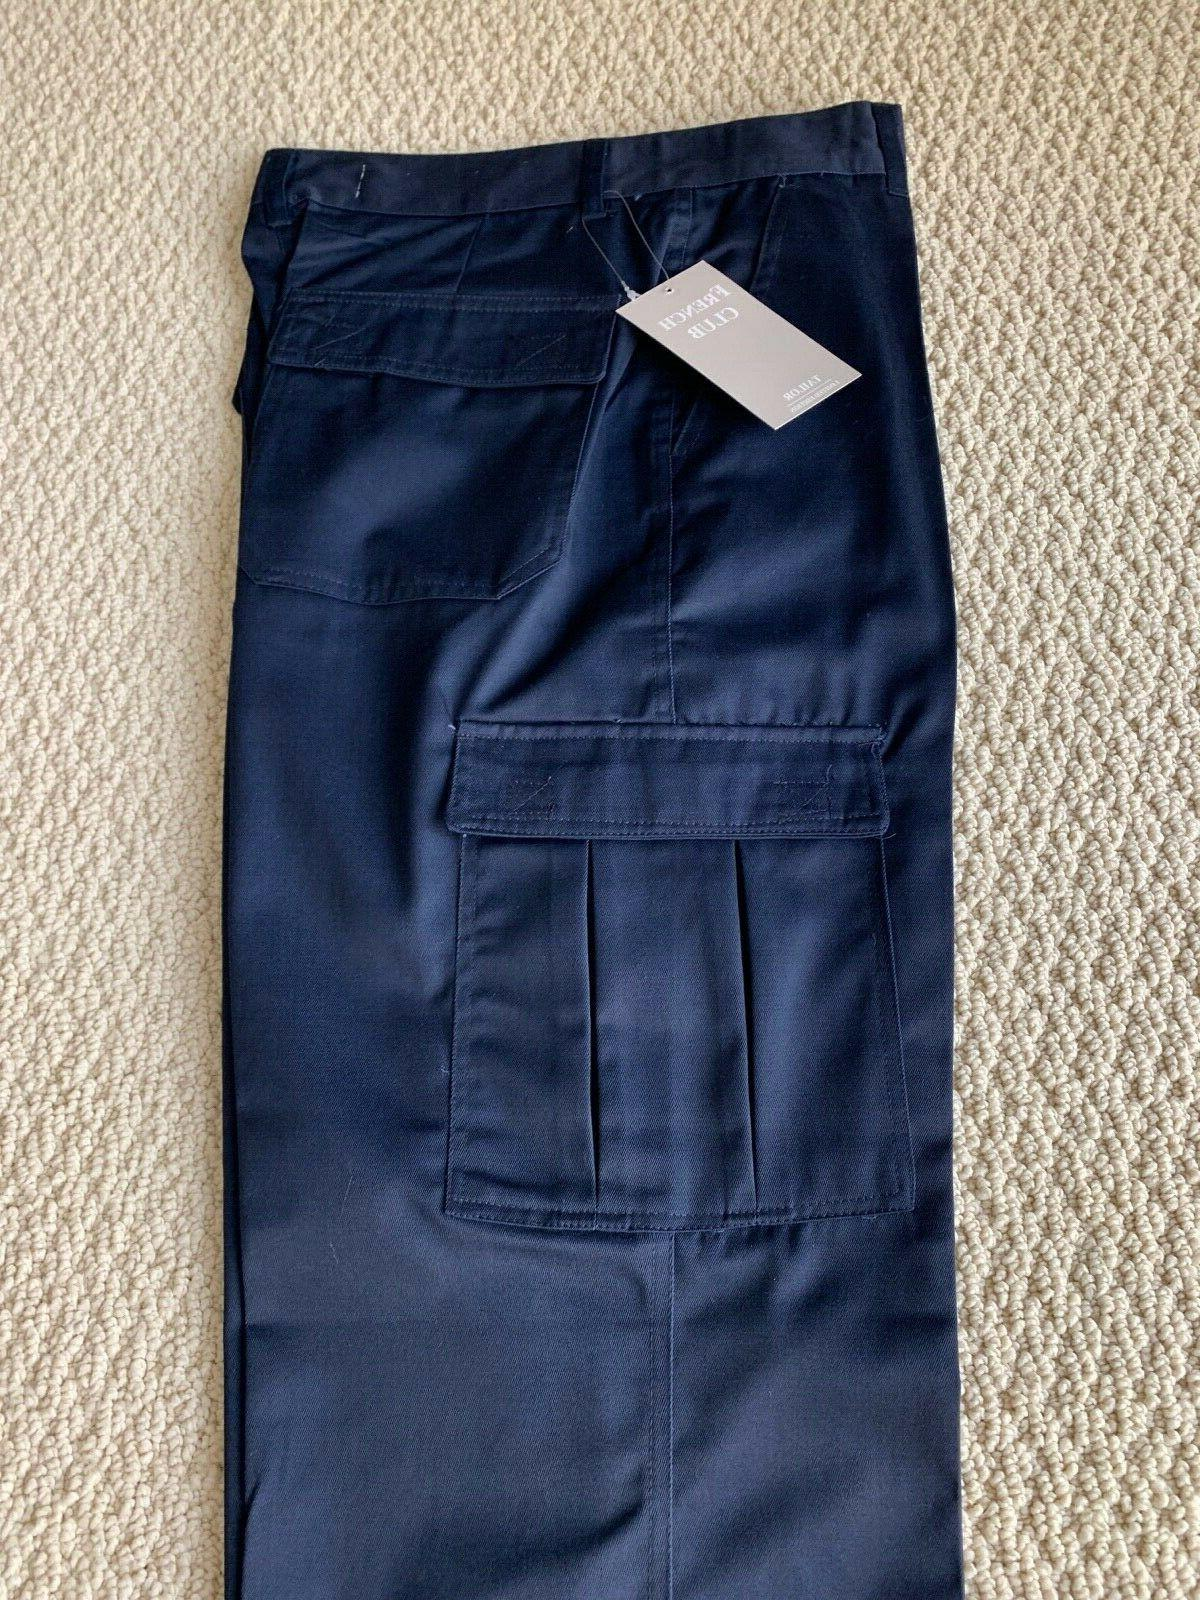 NWT Classic Blue Flap Cargo SIZE 30-40